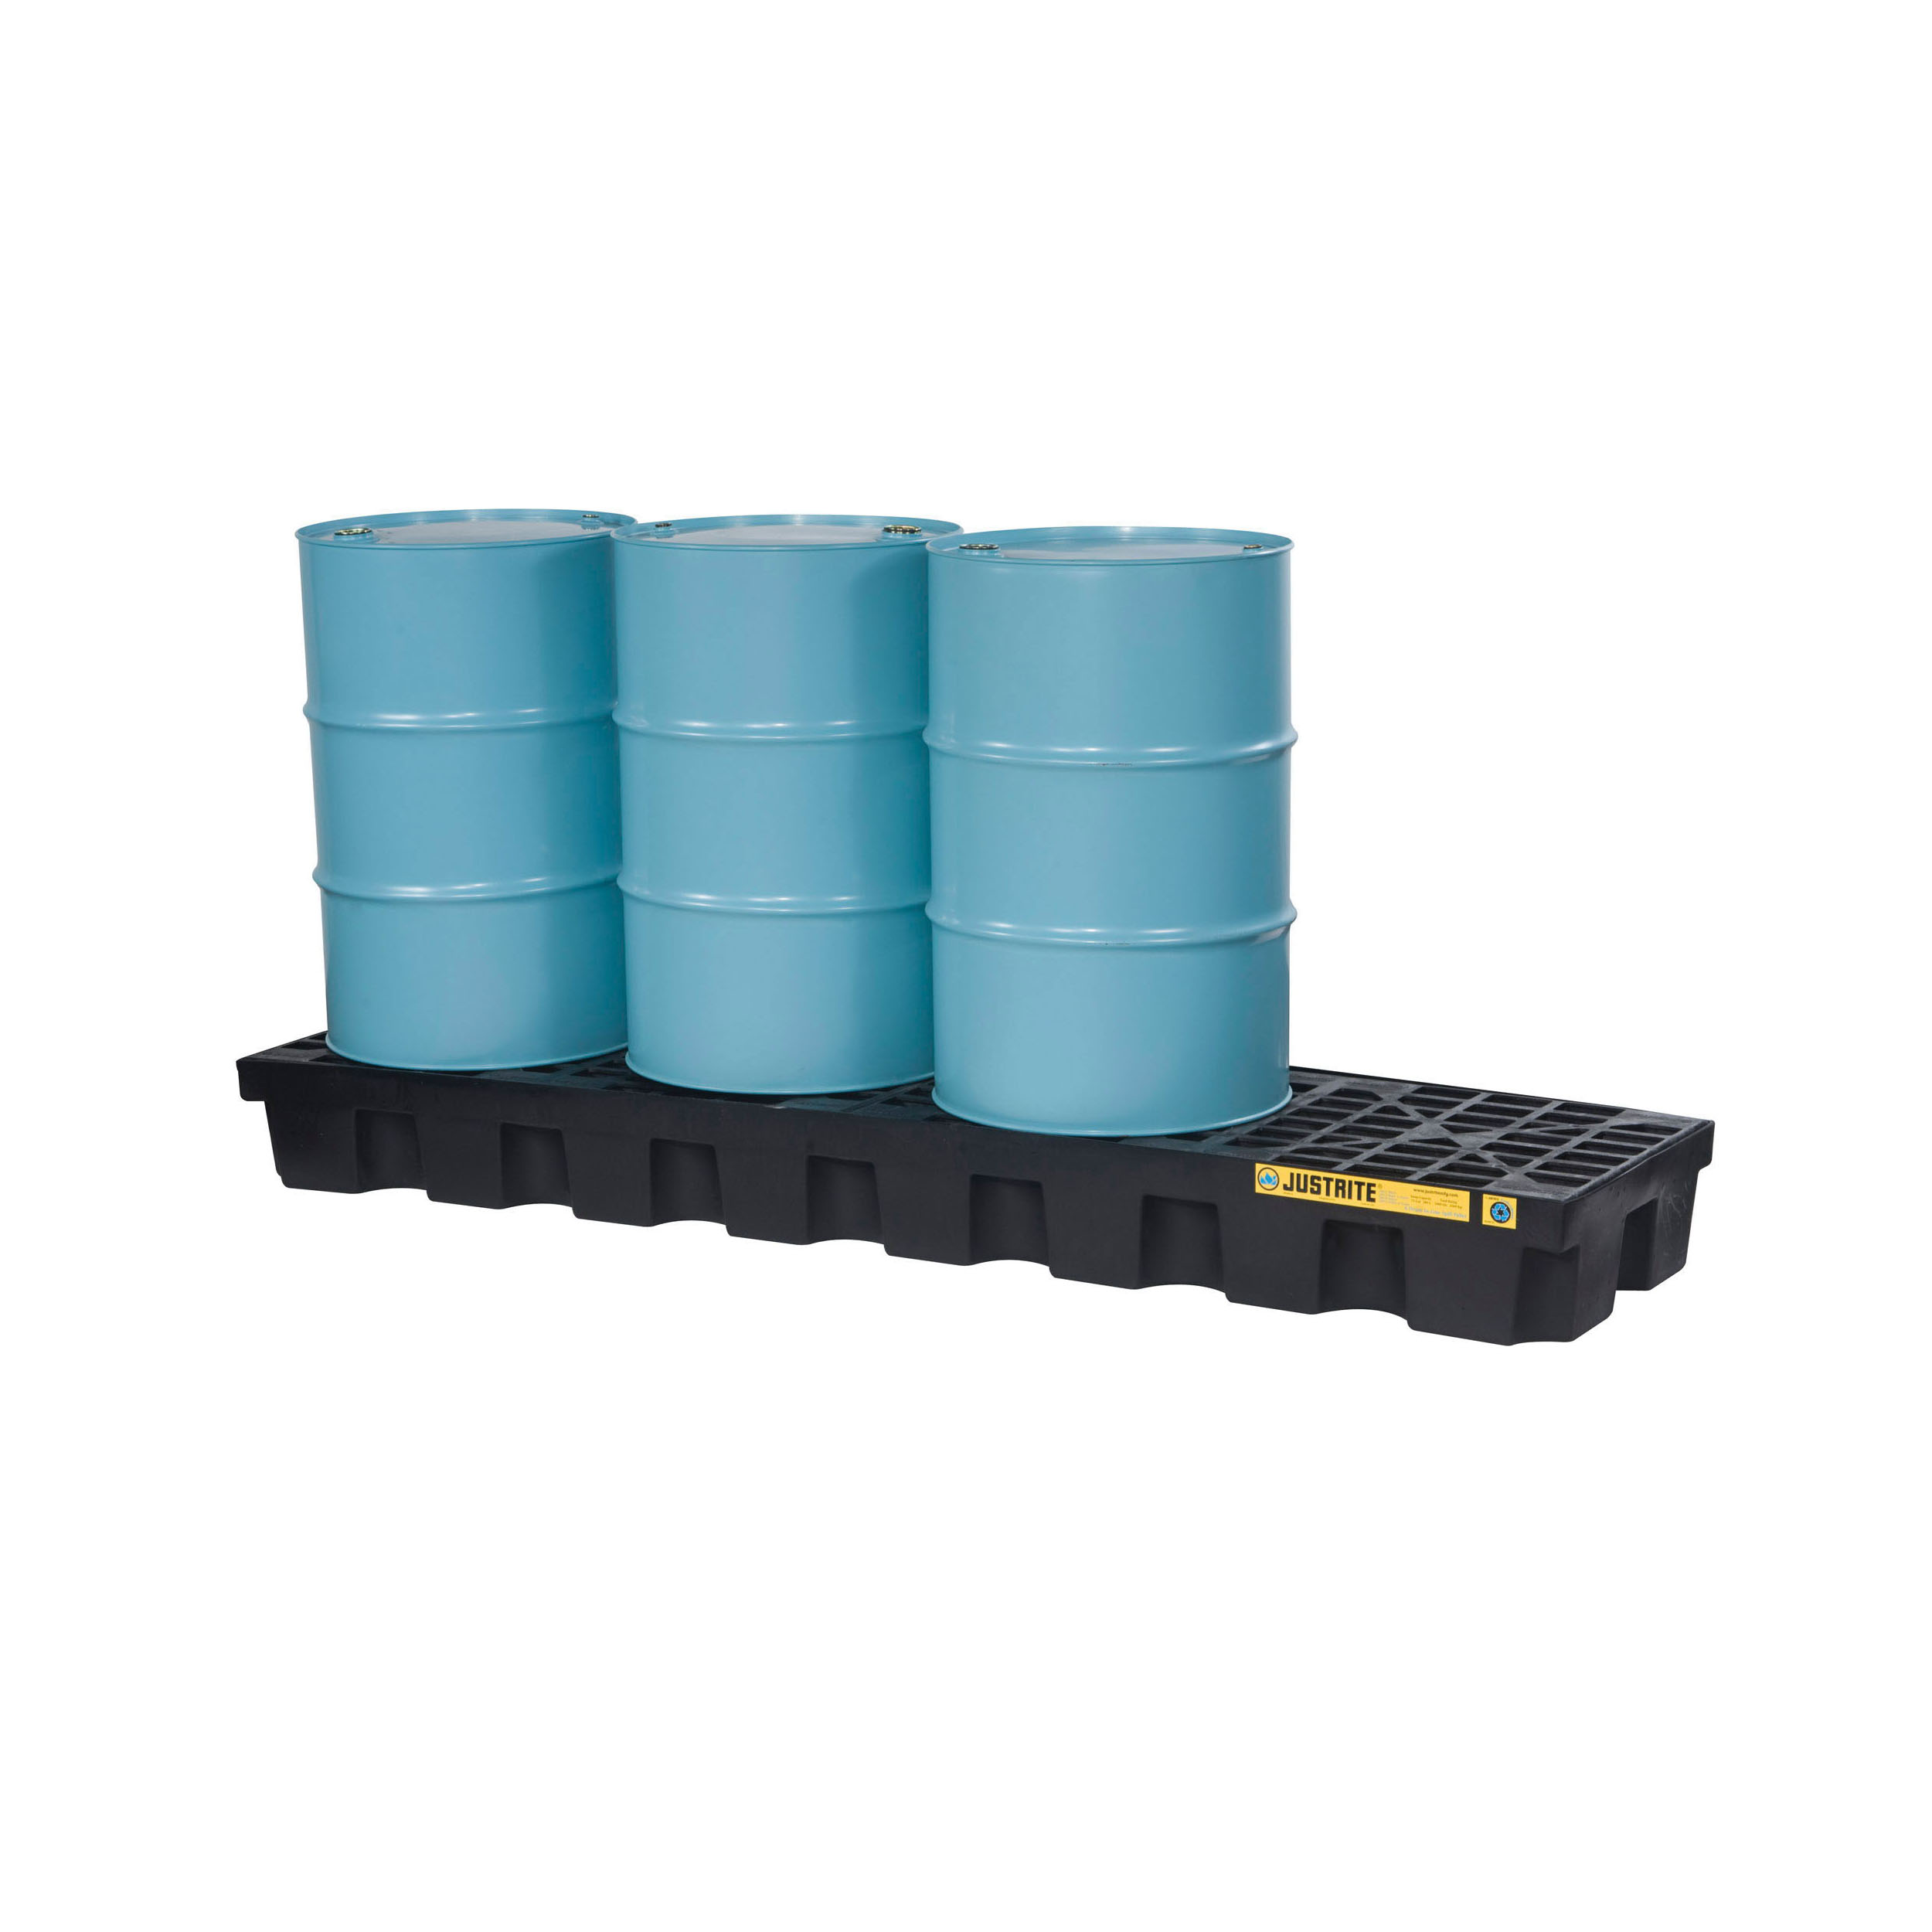 Justrite® 28633 EcoPolyBlend™ Spill Control Pallet With Drain, 4 Drums, 75 gal Spill, 5000 lb Load, 100% Recycled Polyethylene